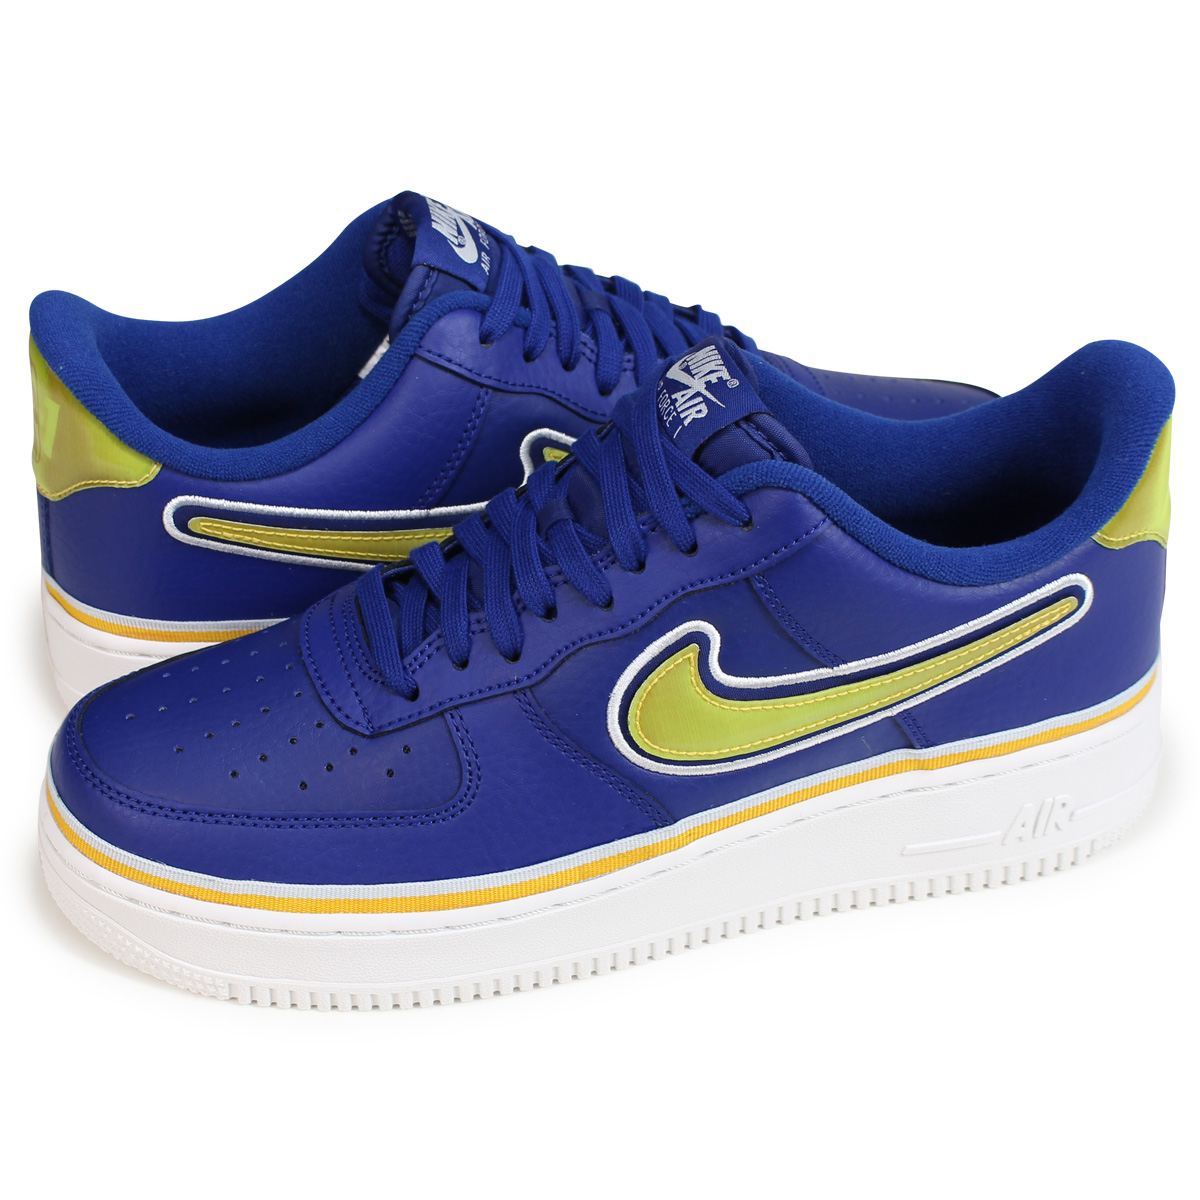 Nike Air Force 1 '07 LV8 Sport NBA DEEP ROYALOFF WHITEUNIVERSITY GOLD